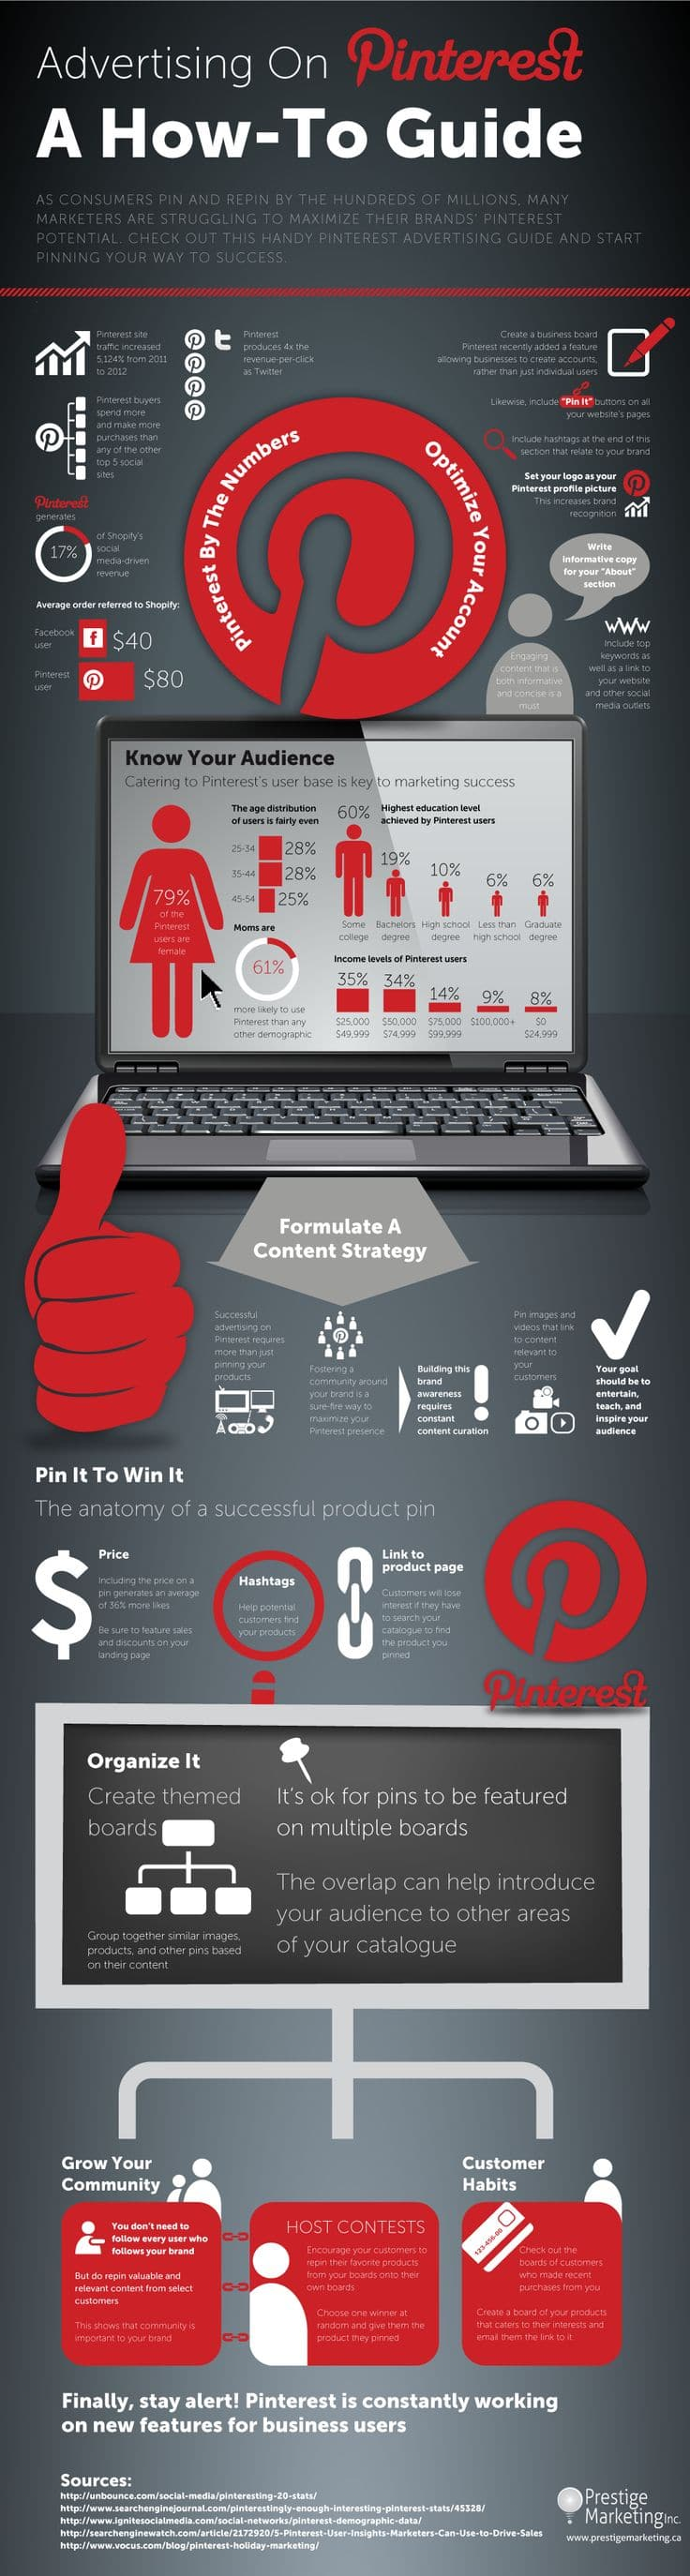 advertising-on-pinterest-a-how-to-guide